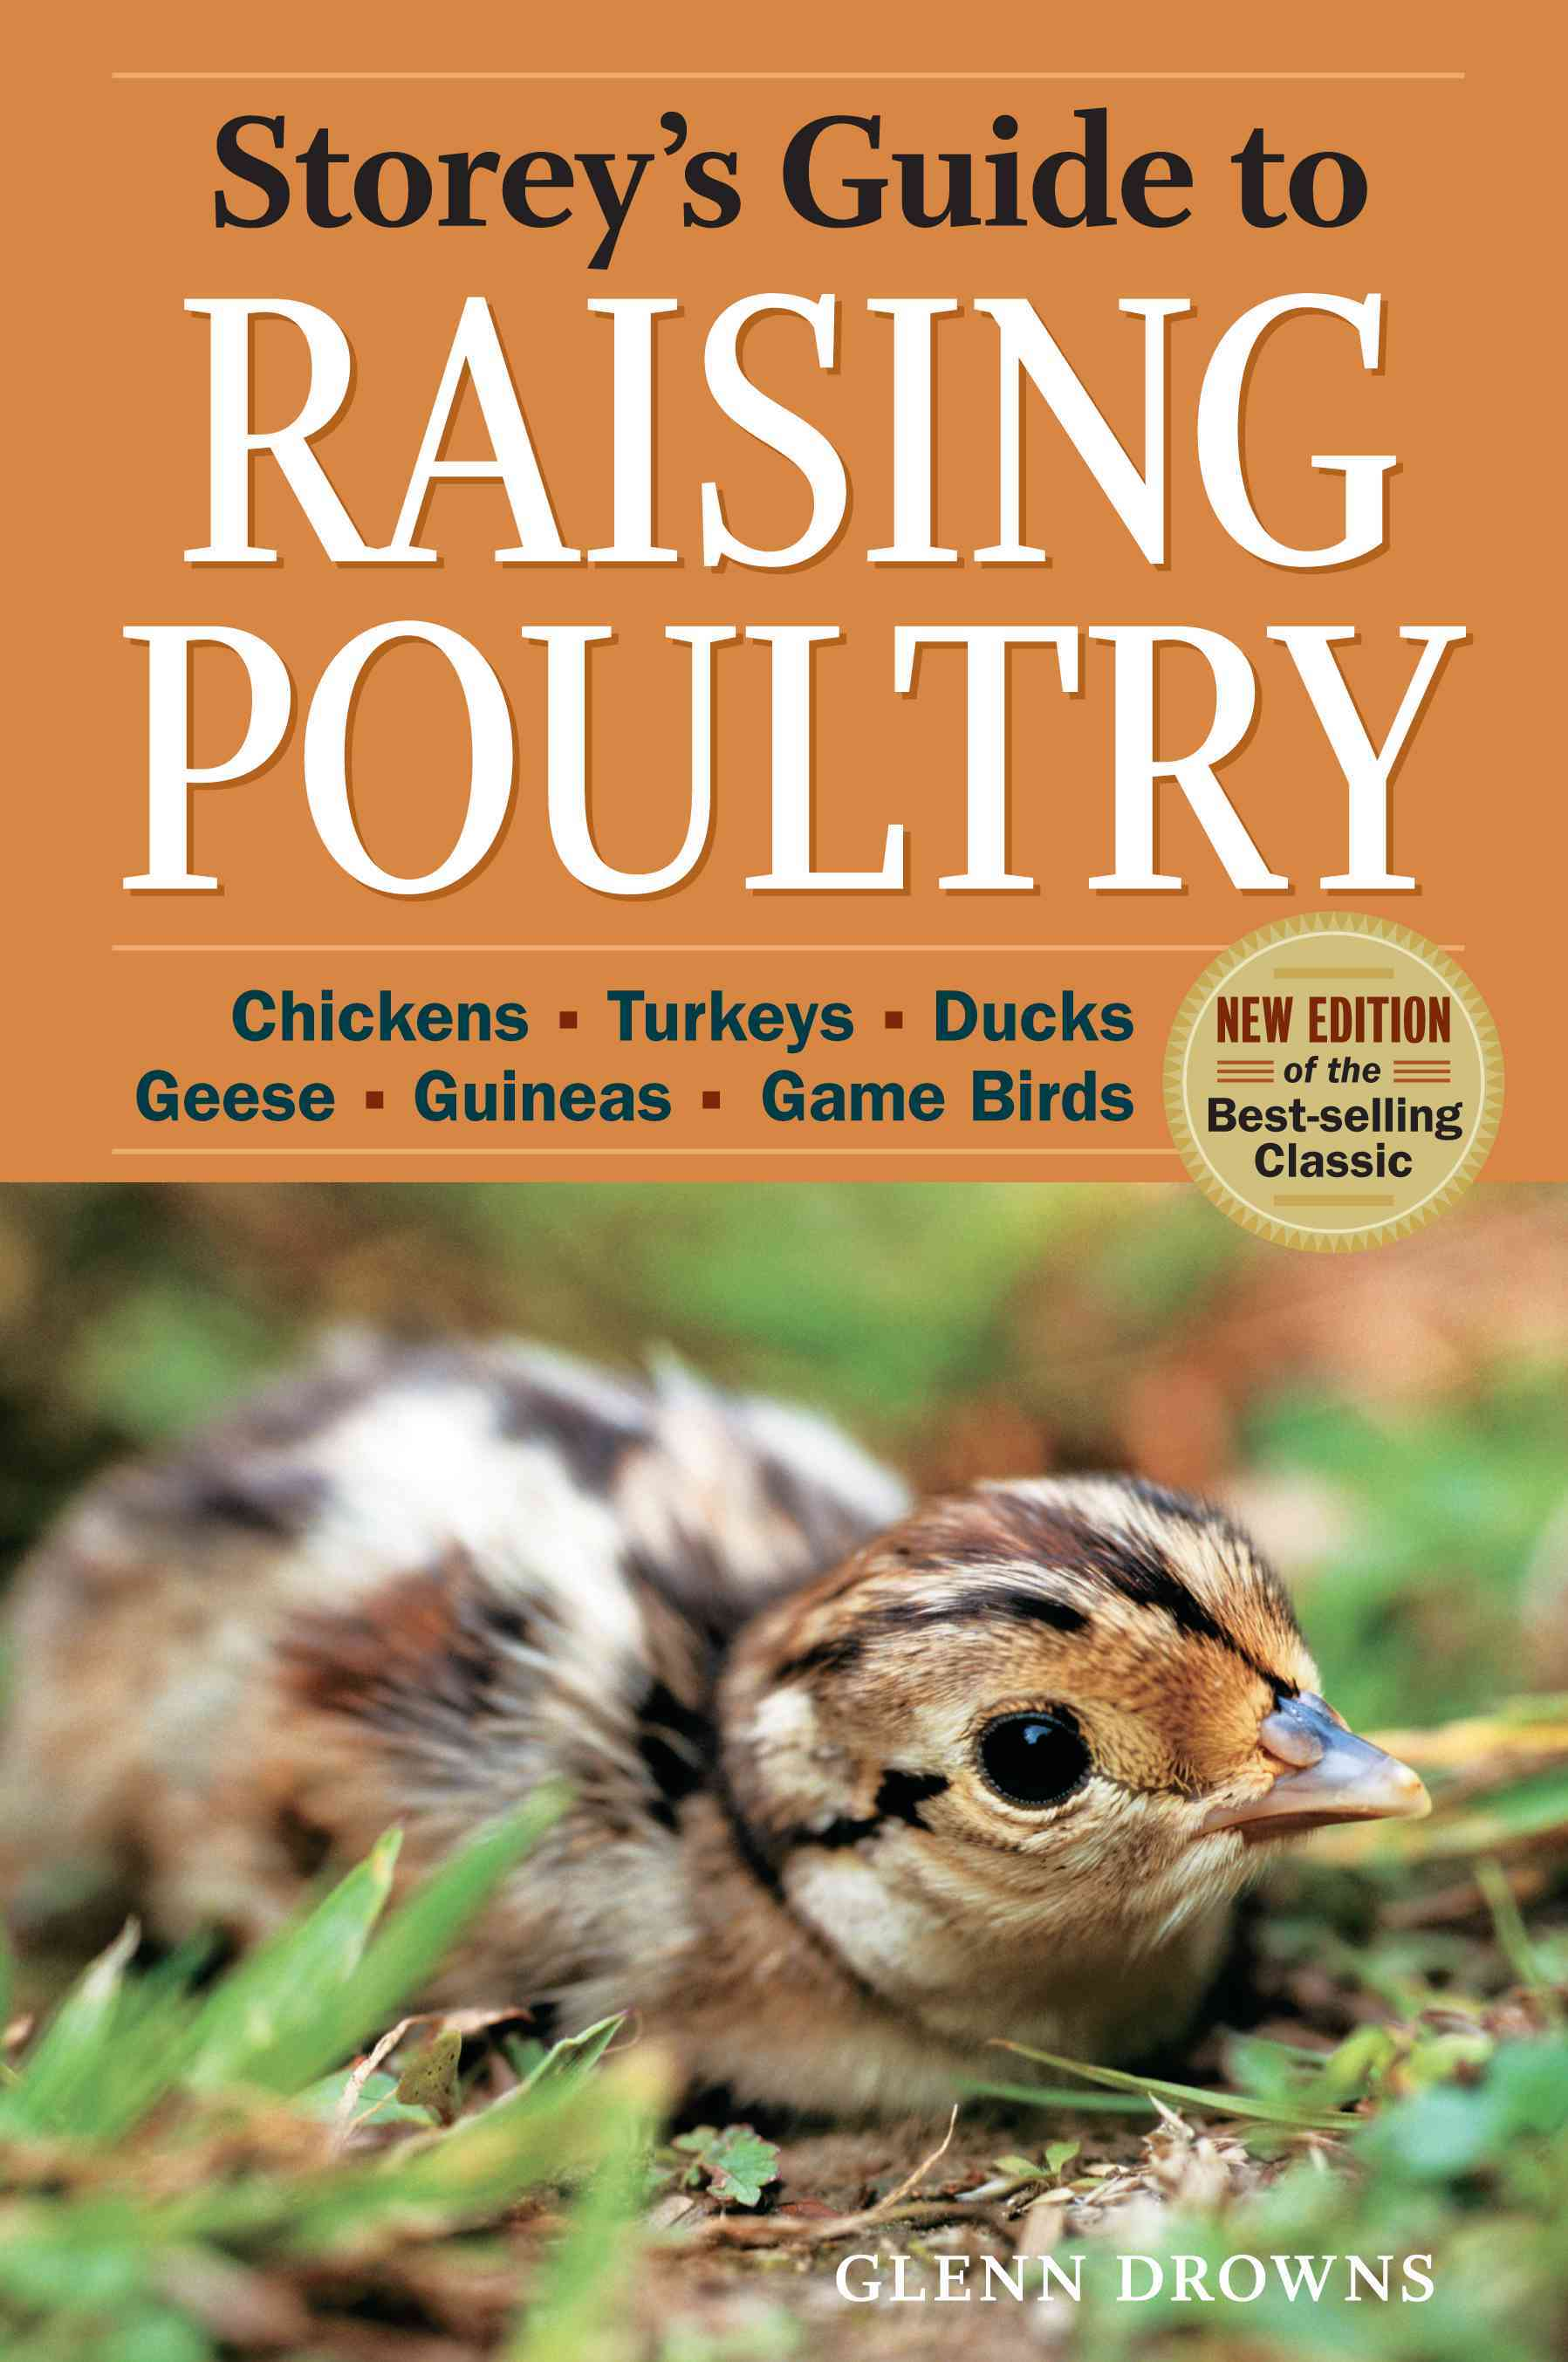 Storey's Guide to Raising Poultry: Chickens, Turkeys, Ducks, Geese, Guineas, Gamebirds (Paperback)